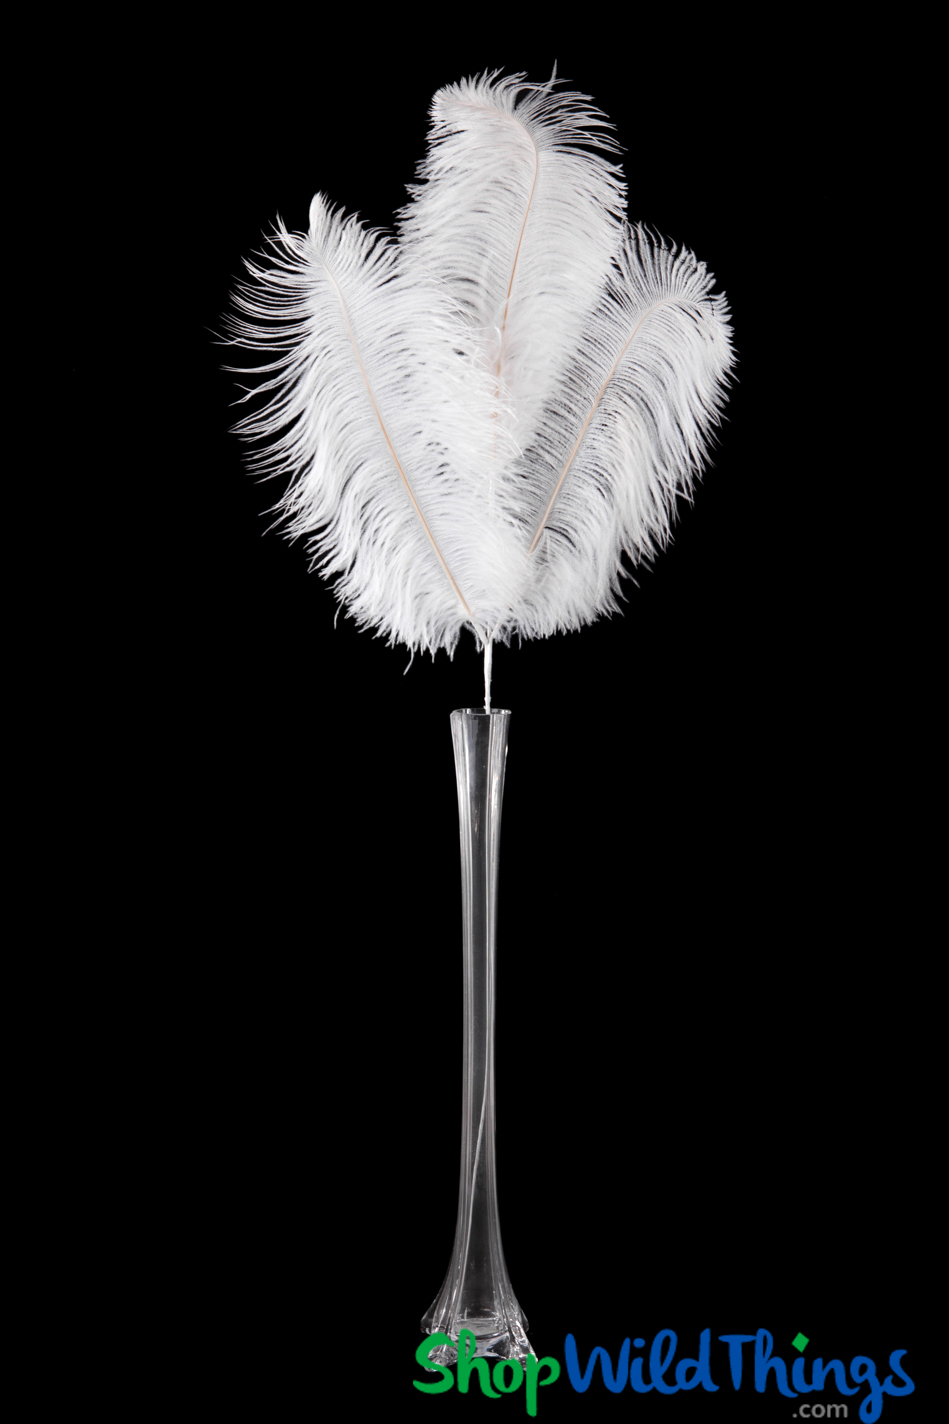 Ostrich feather decorations shopwildthings reviewsmspy